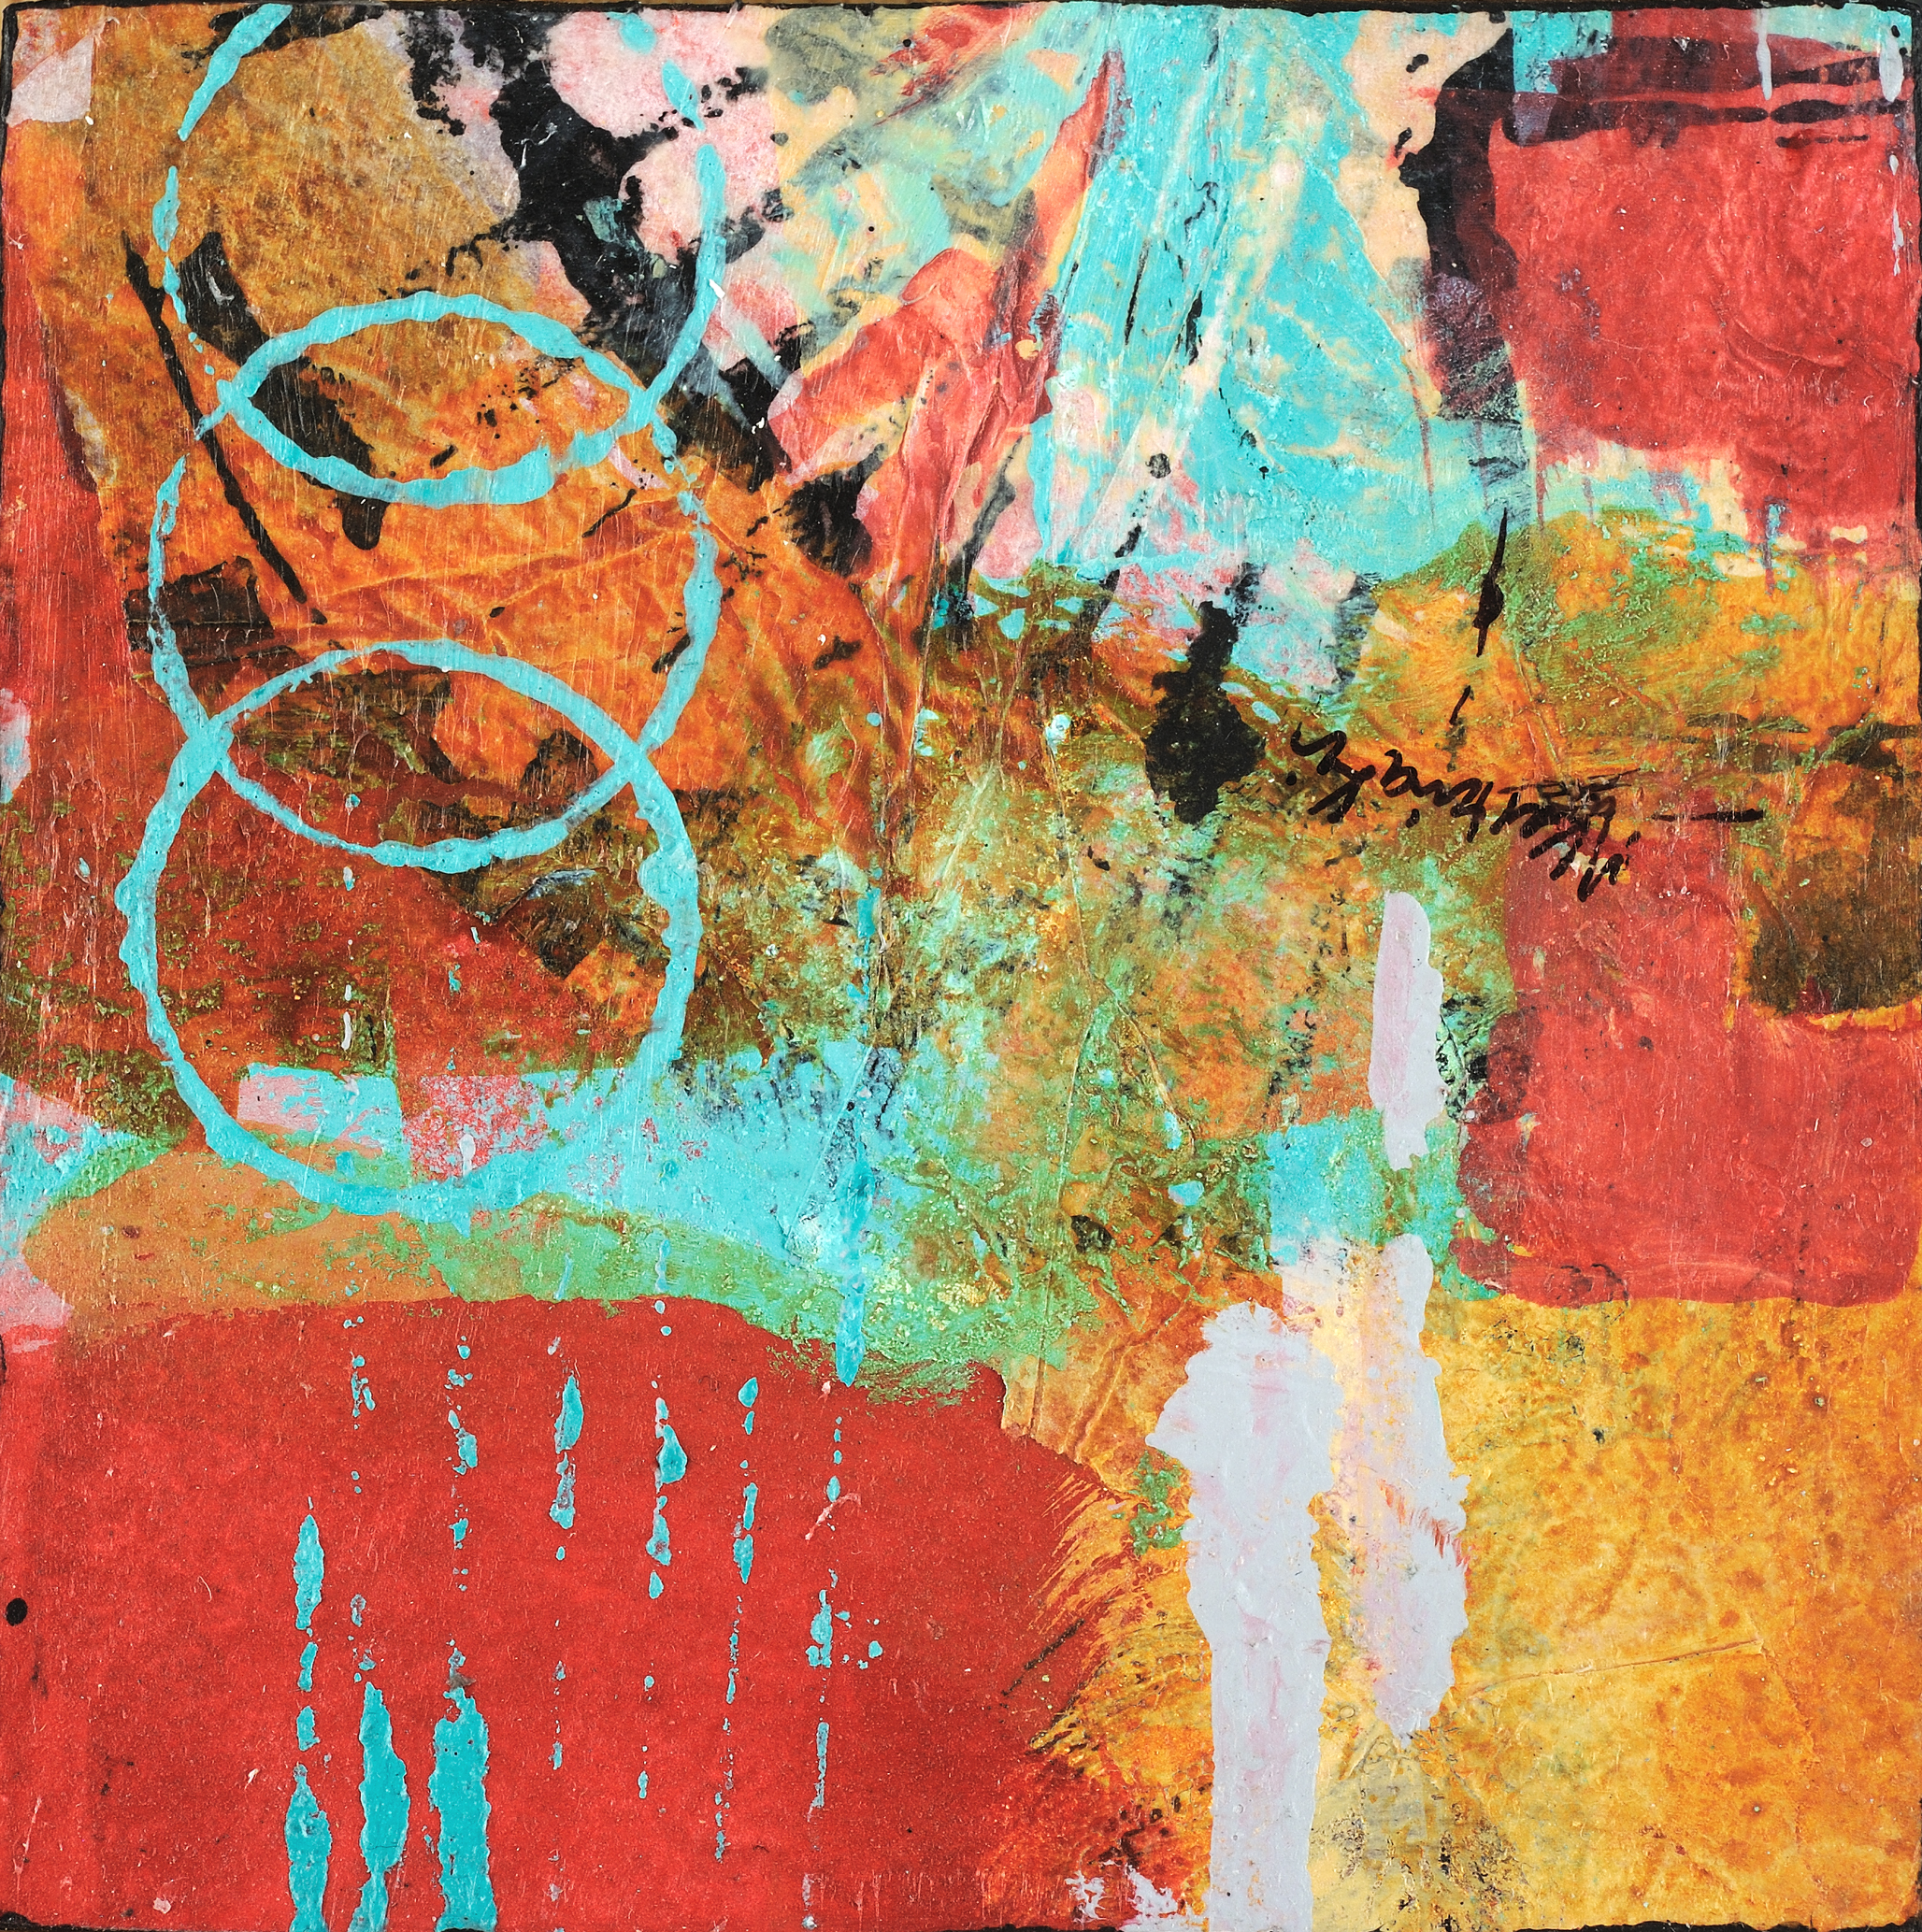 art spots abstract red-teal 2 of 4.jpg